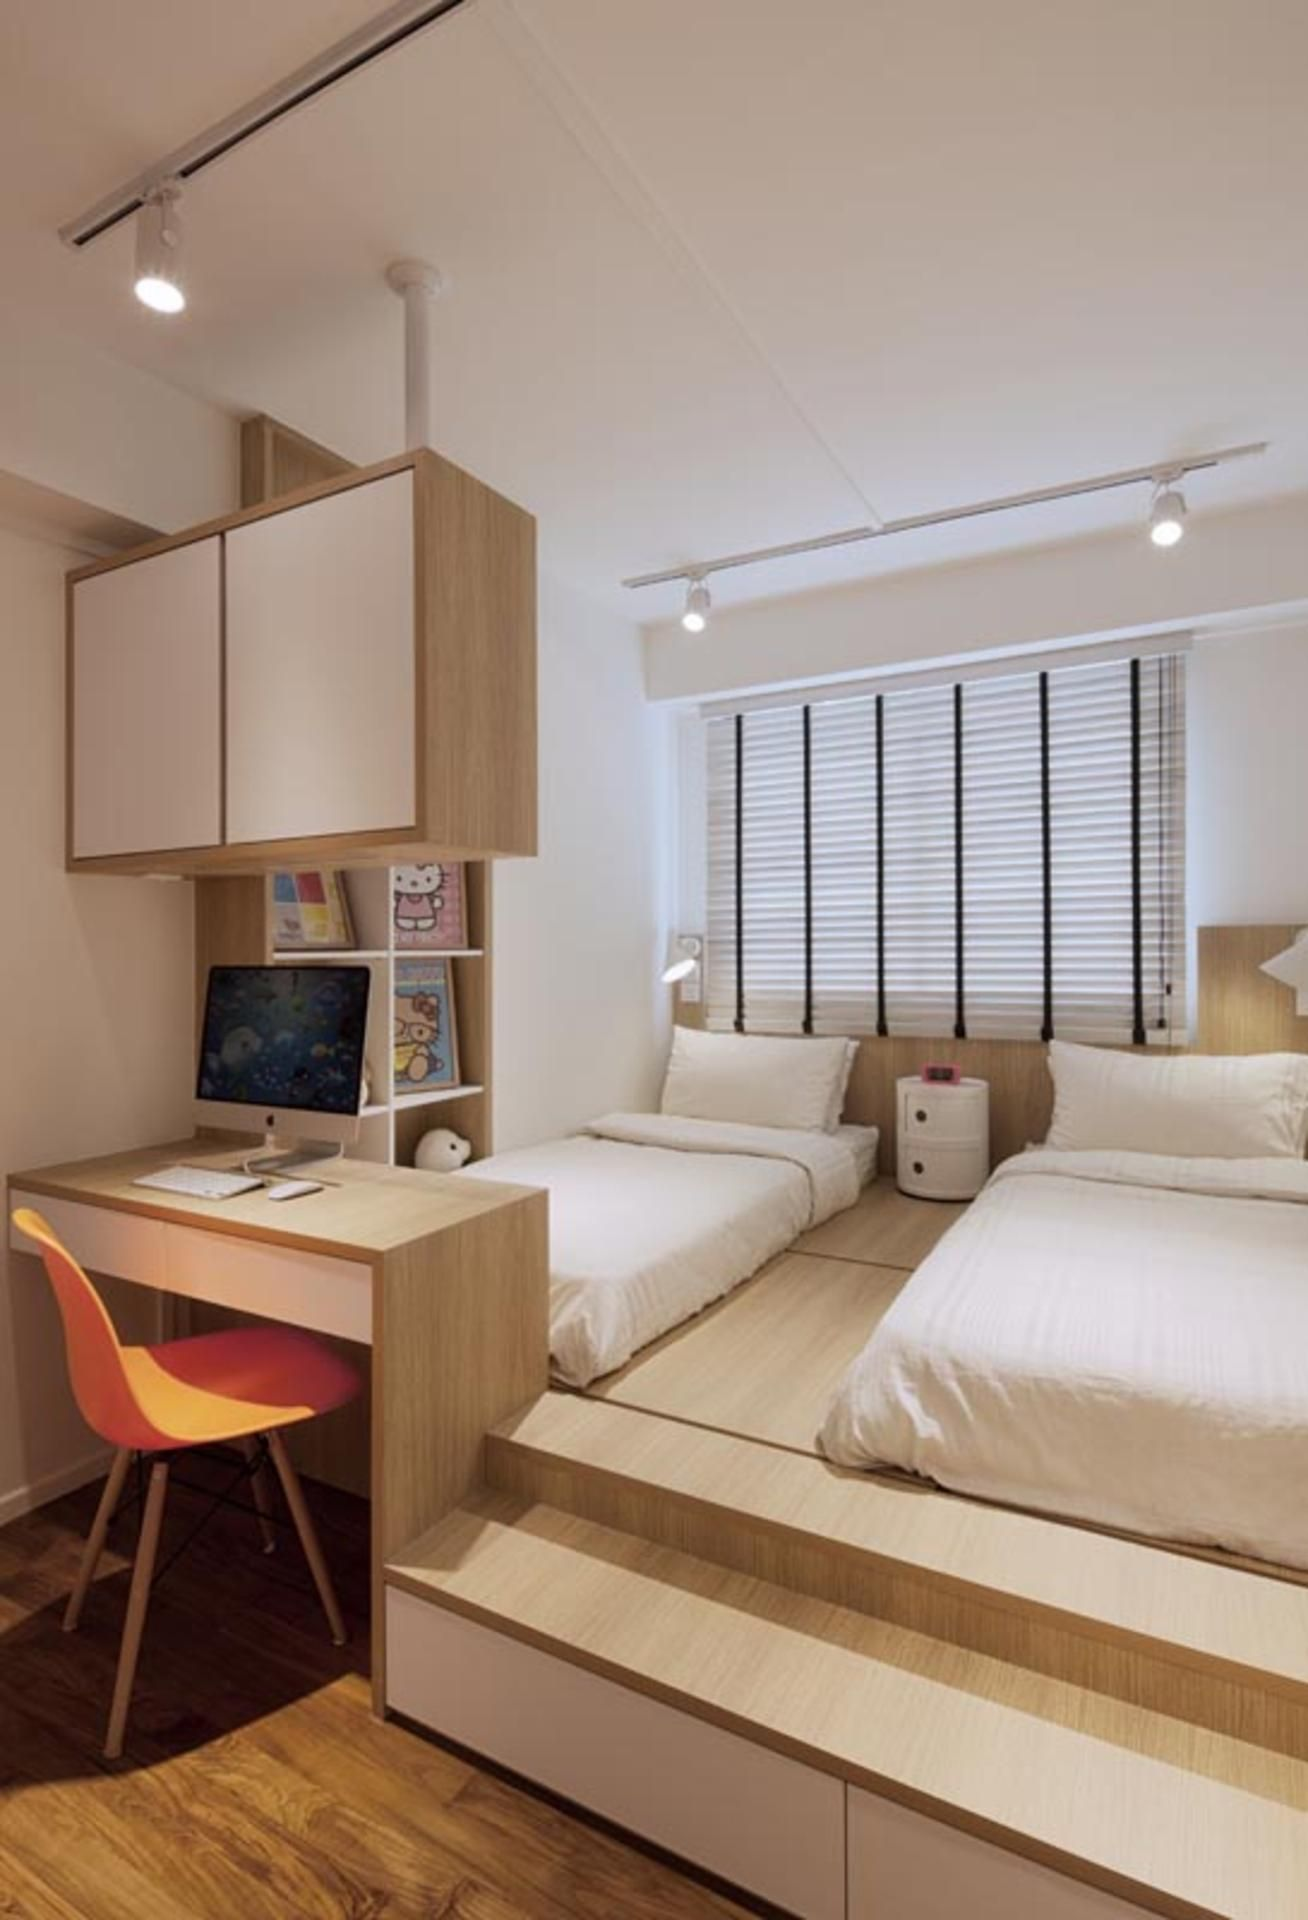 Platform Bed Bedroom Ideas Part - 33: Punggol Waterway Terraces (Block 308A) | Qanvast | Home Design, Renovation,  Remodelling